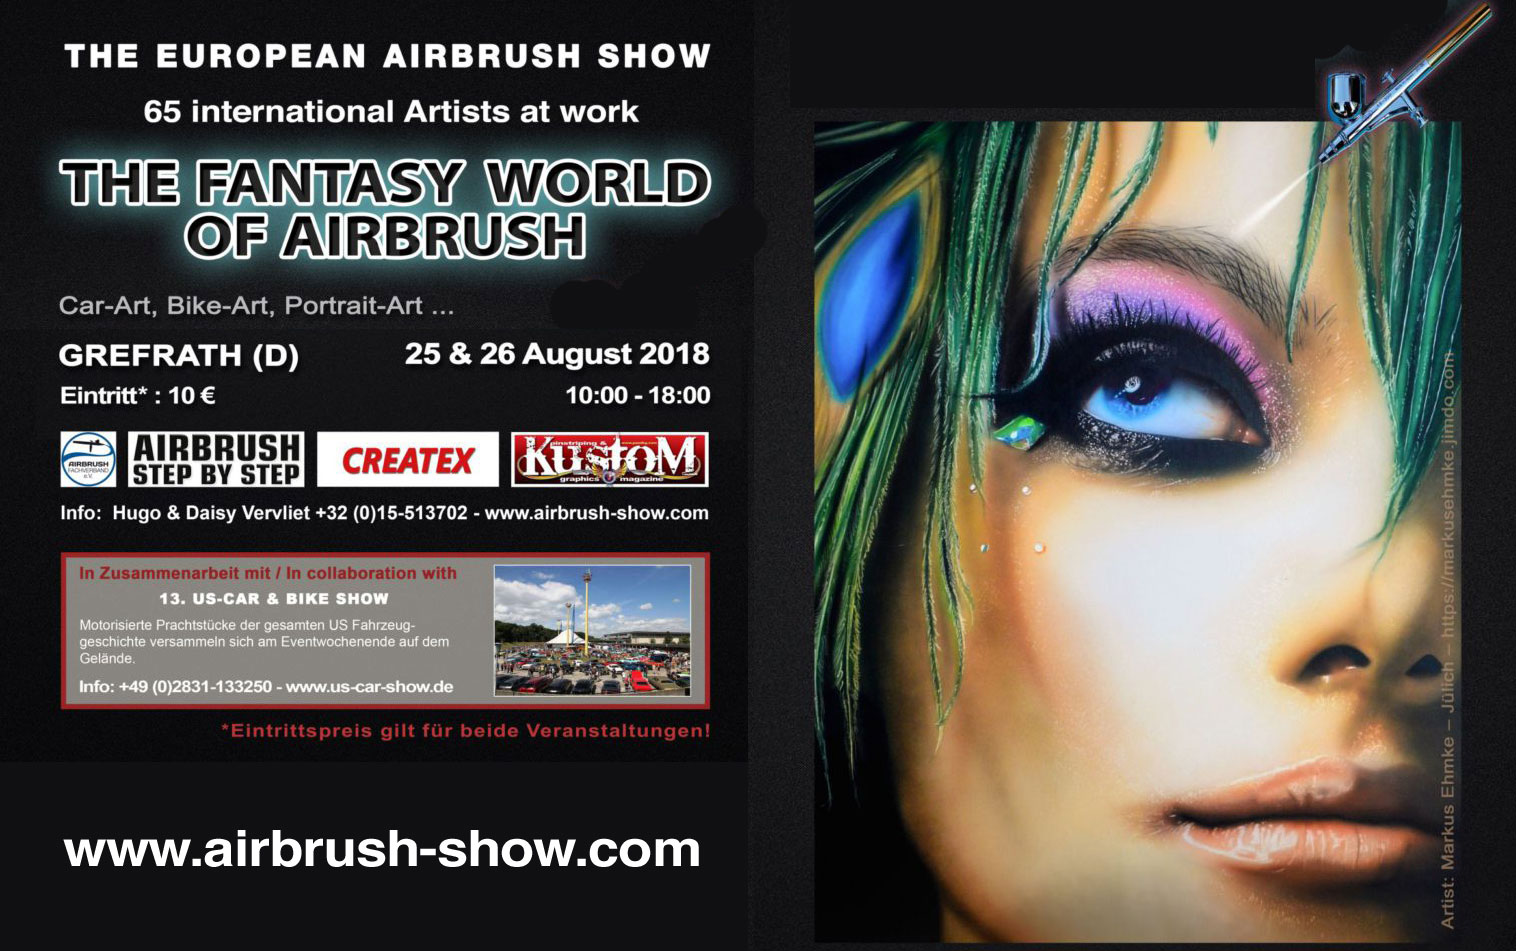 The Fantasy World of Airbrush: Meet & Greet in Grefrath